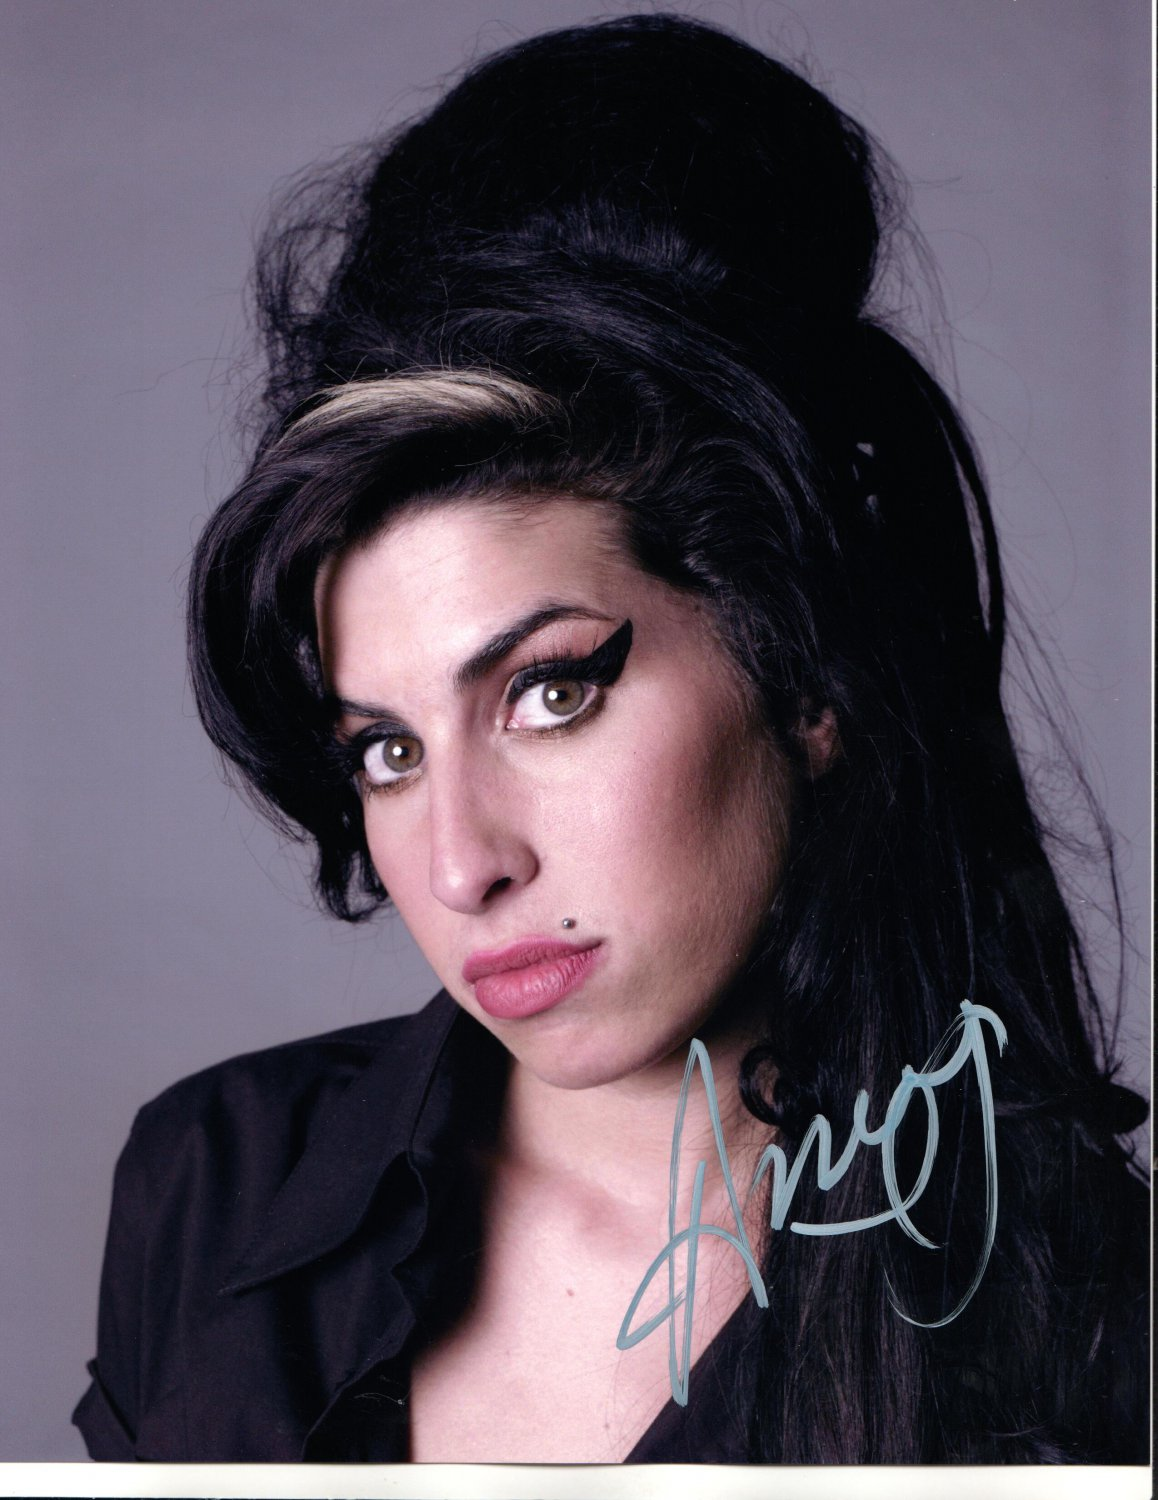 AMY WINEHOUSE - TALENTED SOULFUL SINGER - SAD - R-A-R-E - HAND SIGNED AUTOGRAPHED PHOTO WITH COA